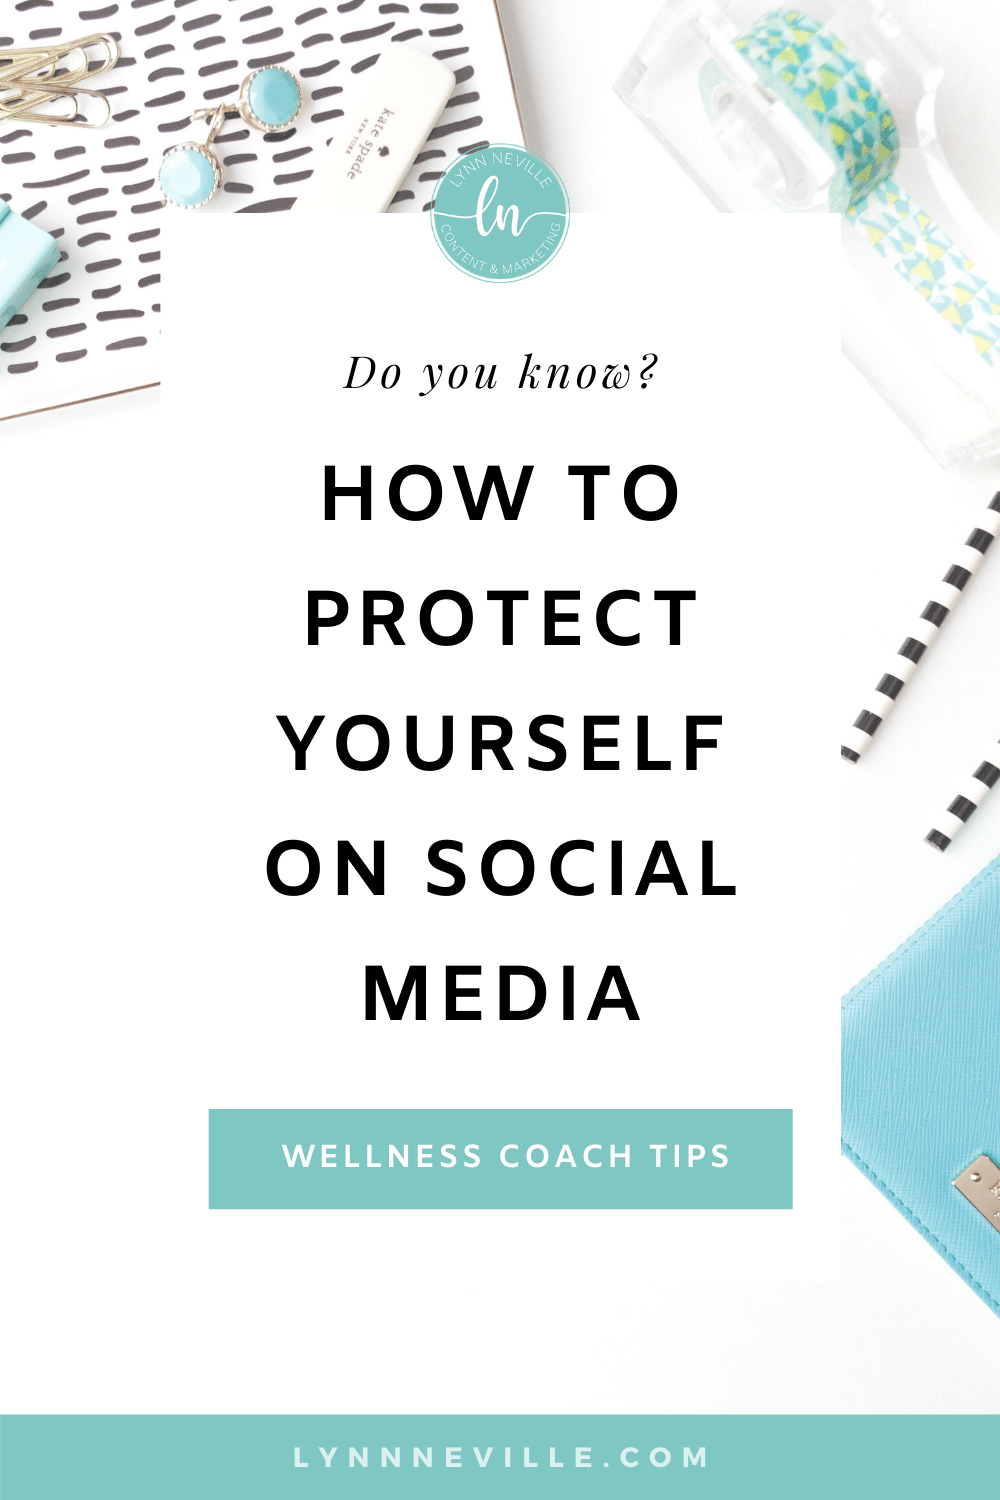 Do You Know How To Protect Yourself On Social Media?